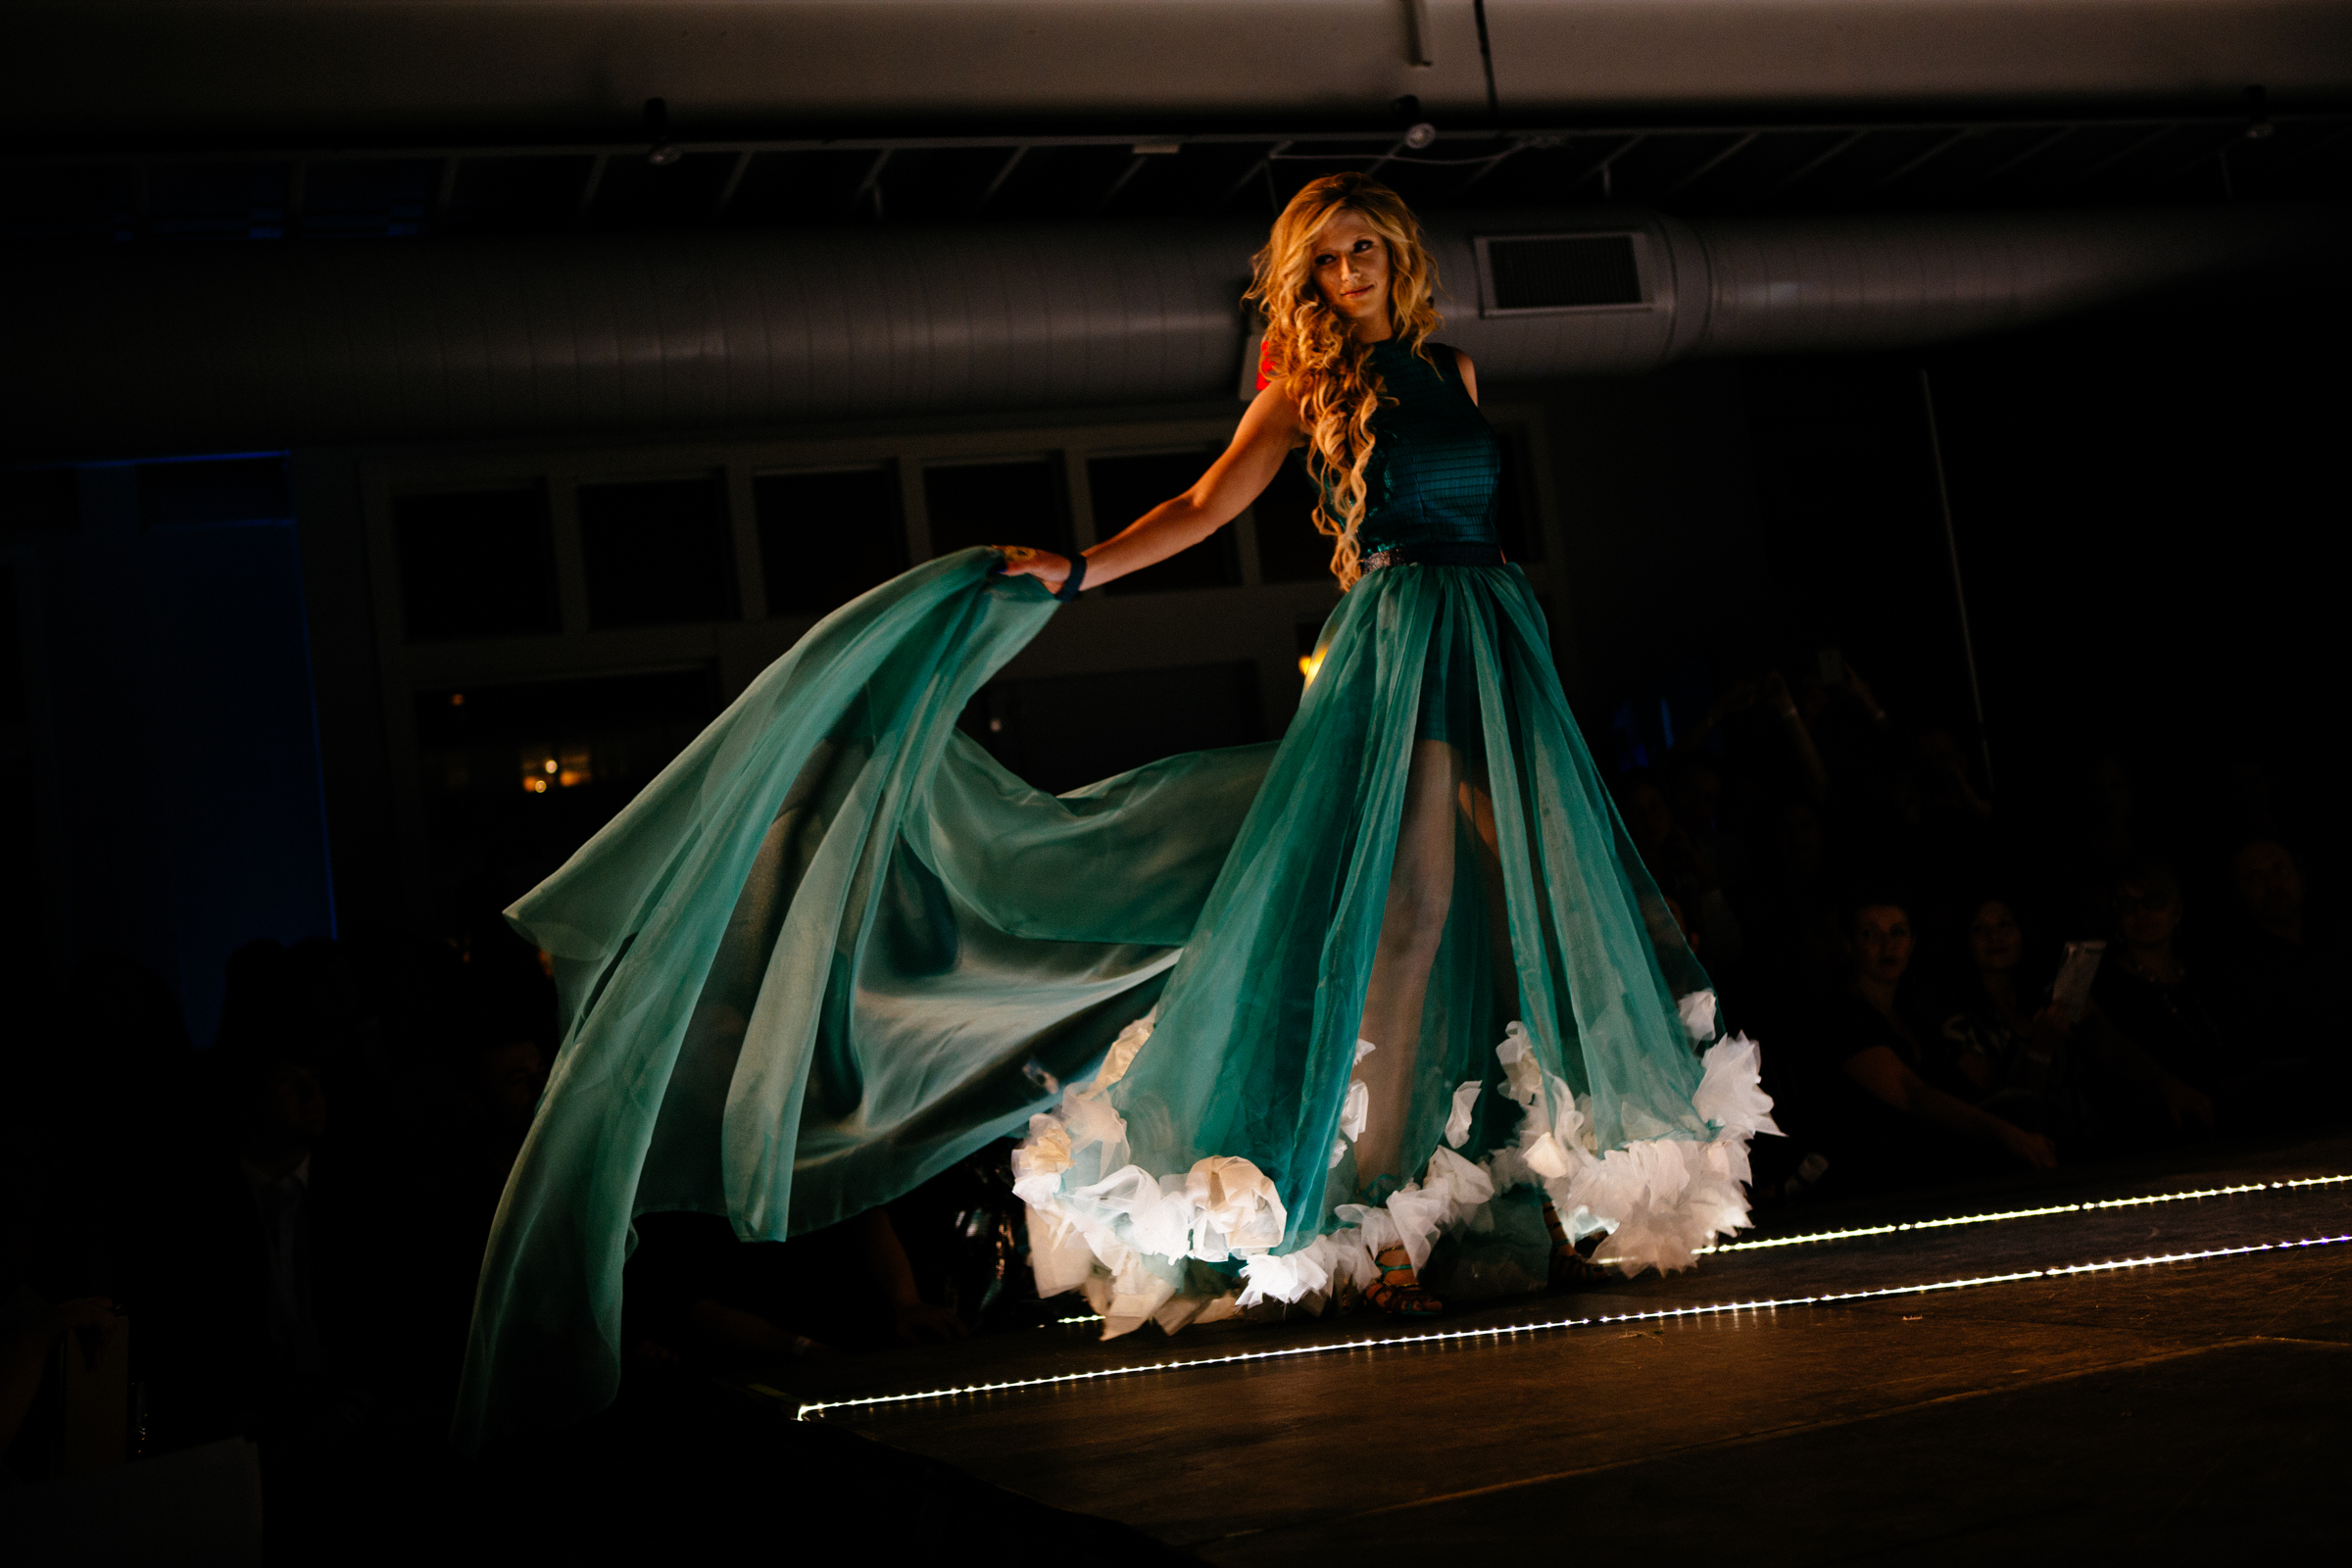 NewStudio Architecture created a flowing ensemble from building and interior design materials for the IIDA Fusion + Fashion fundraiser